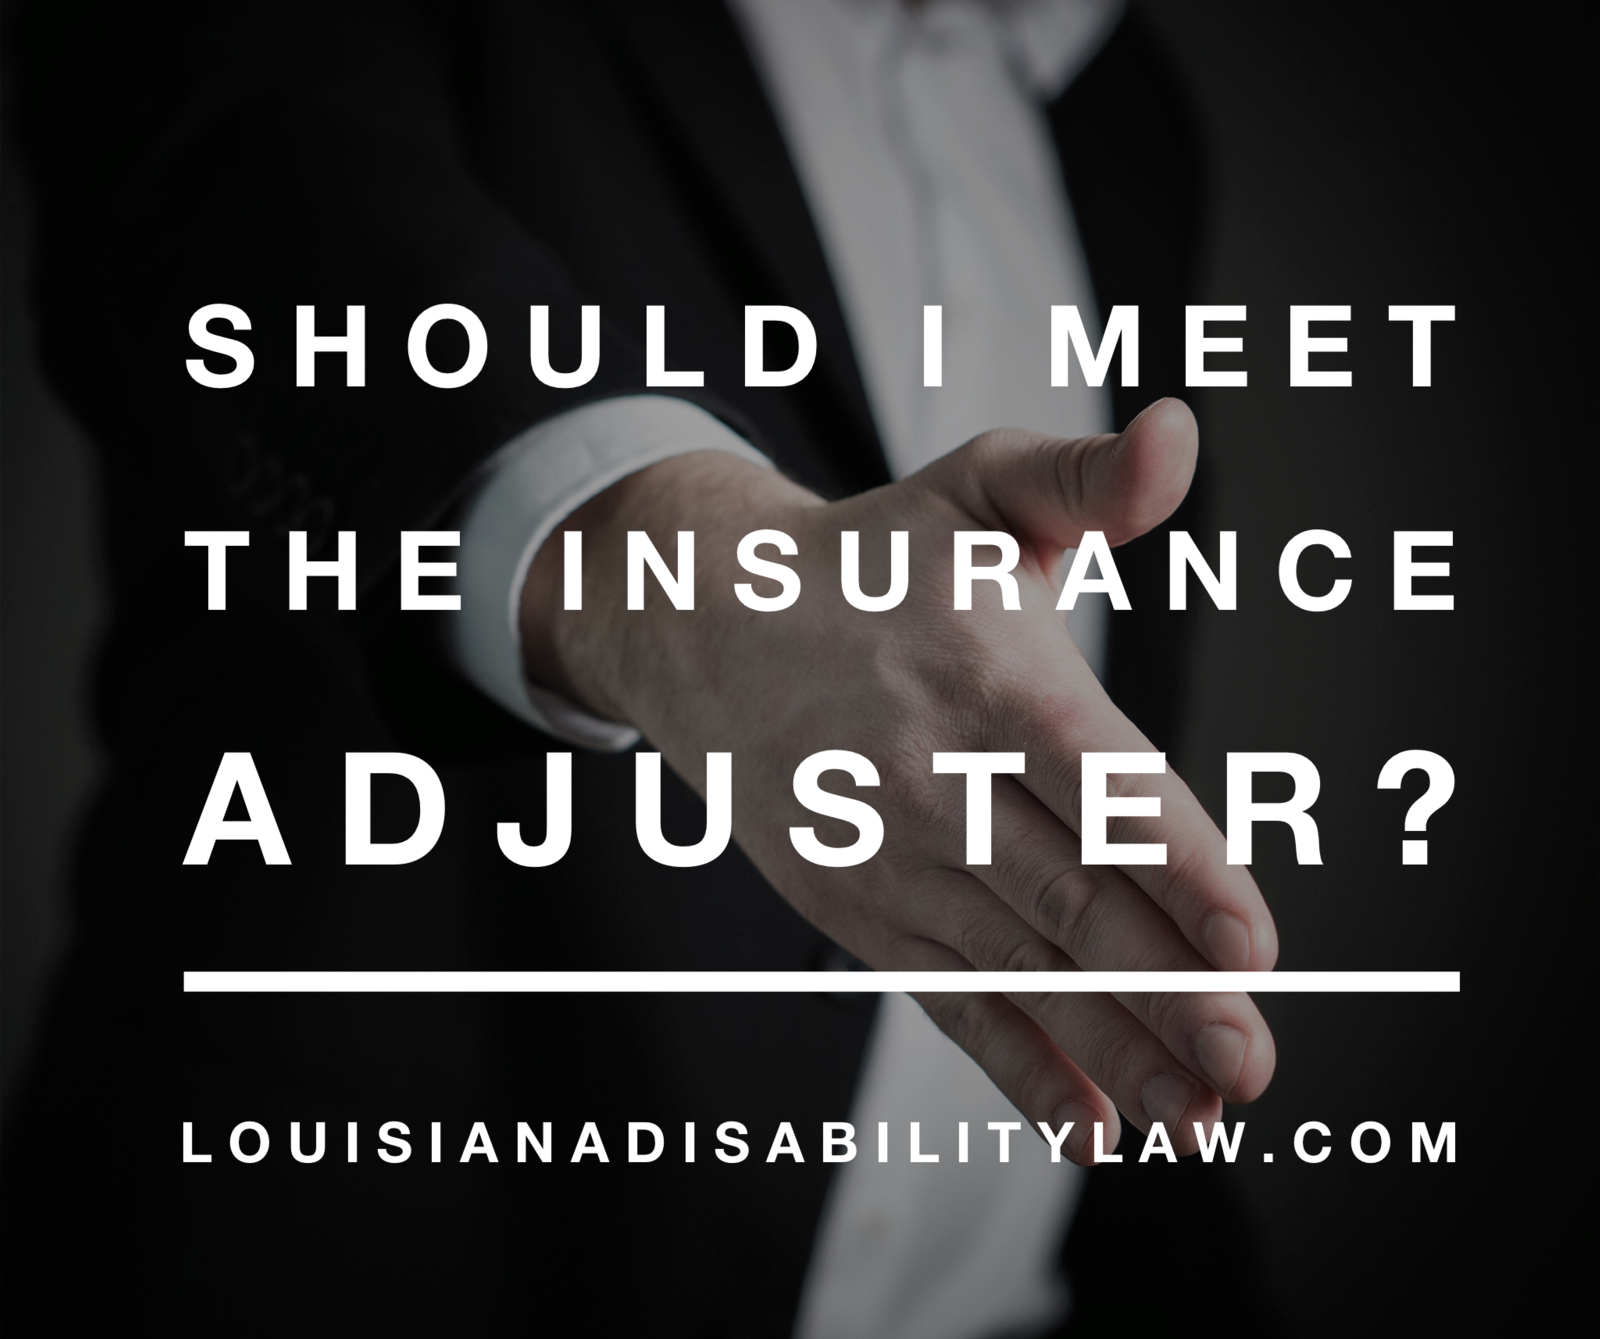 Should I meet the insurance adjuster?